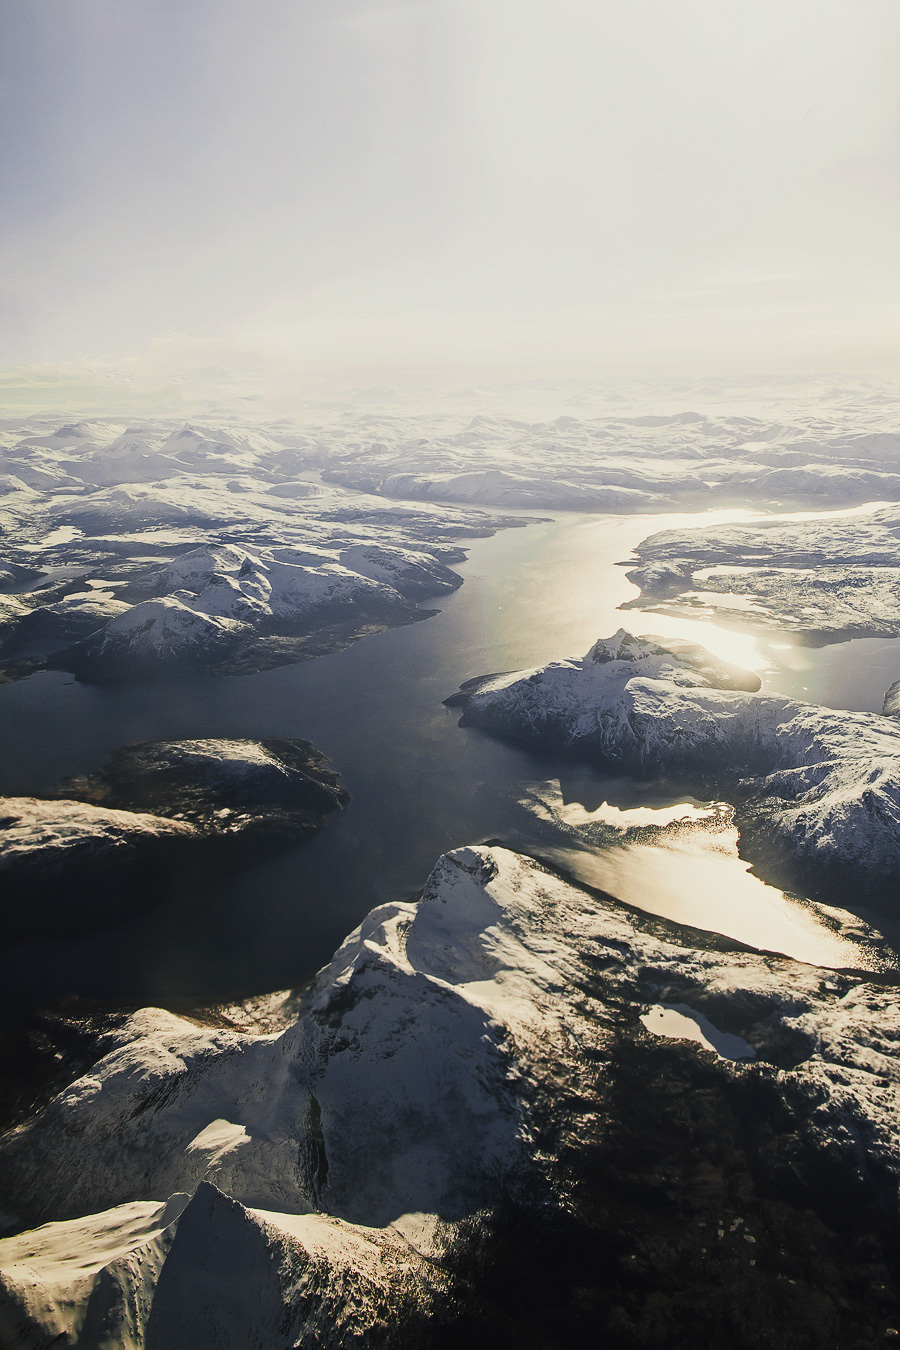 Mountains and ocean from above